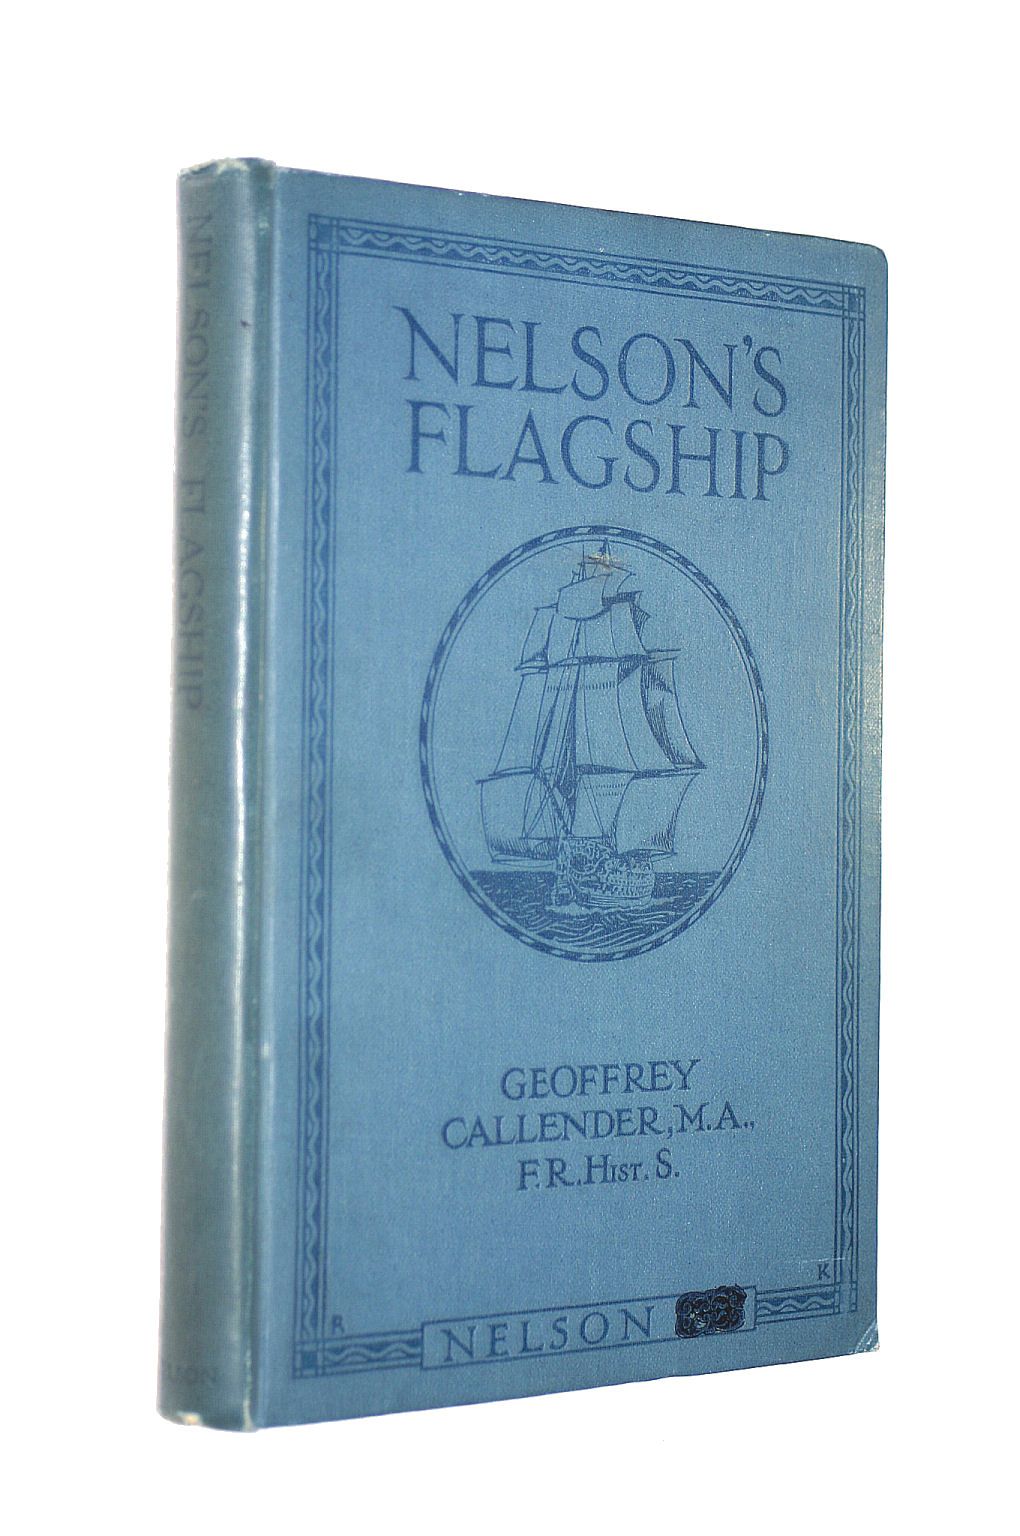 Image for Nelson's Flagship (Abridged From The Story Of H.M.S. Victory)